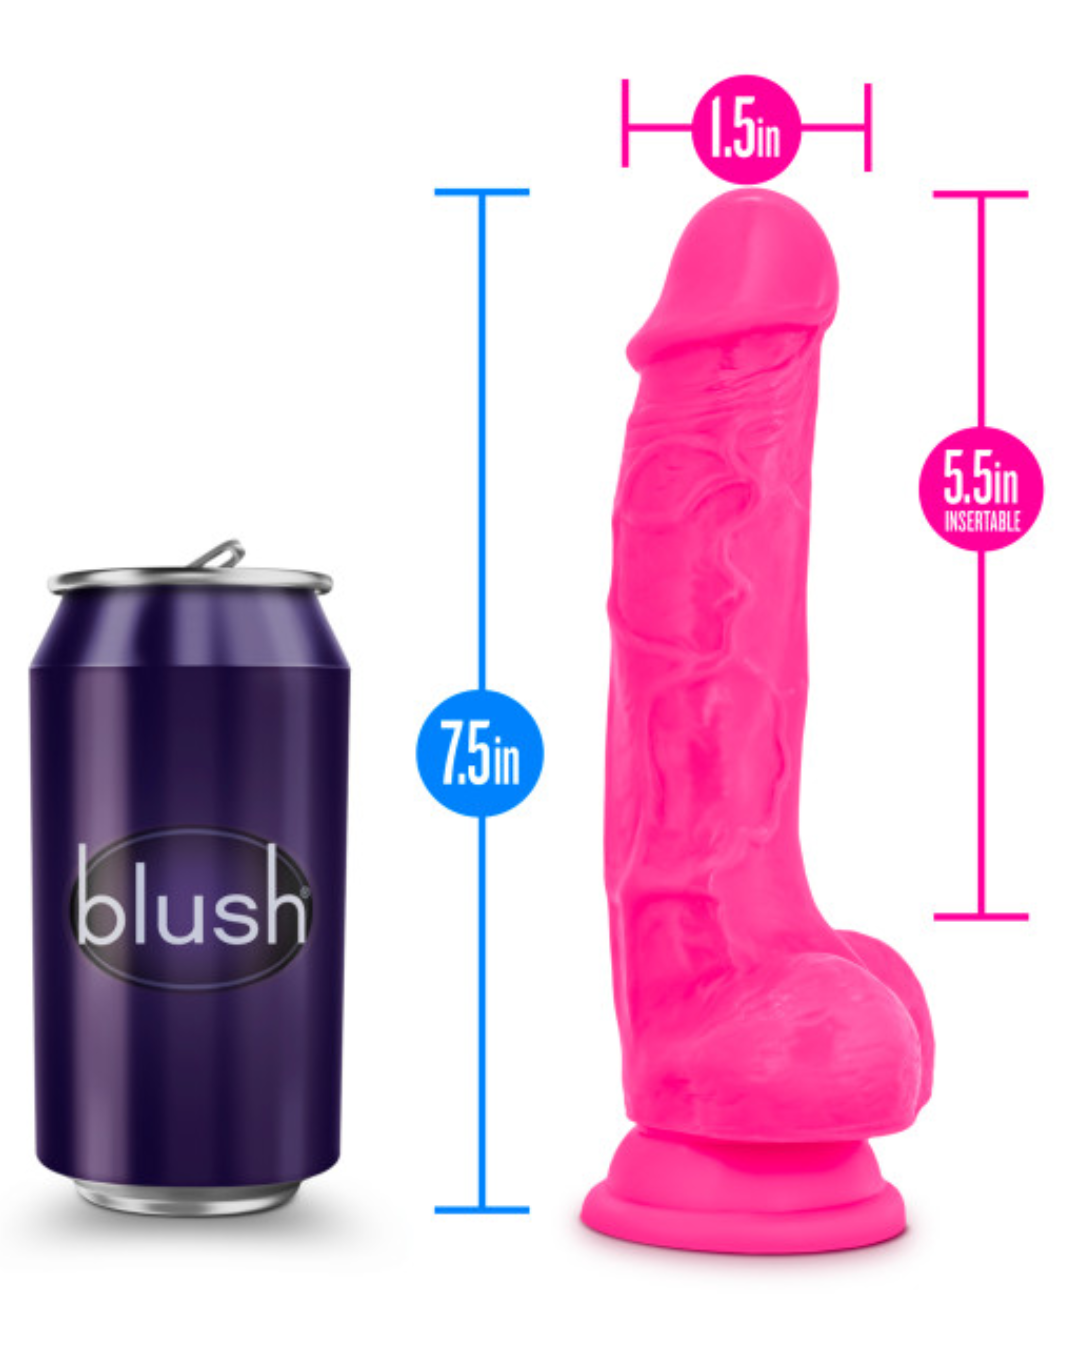 Neo Elite 7.5 Inch Dual Density Silicone Dildo with Balls by Blush - Neon Pink